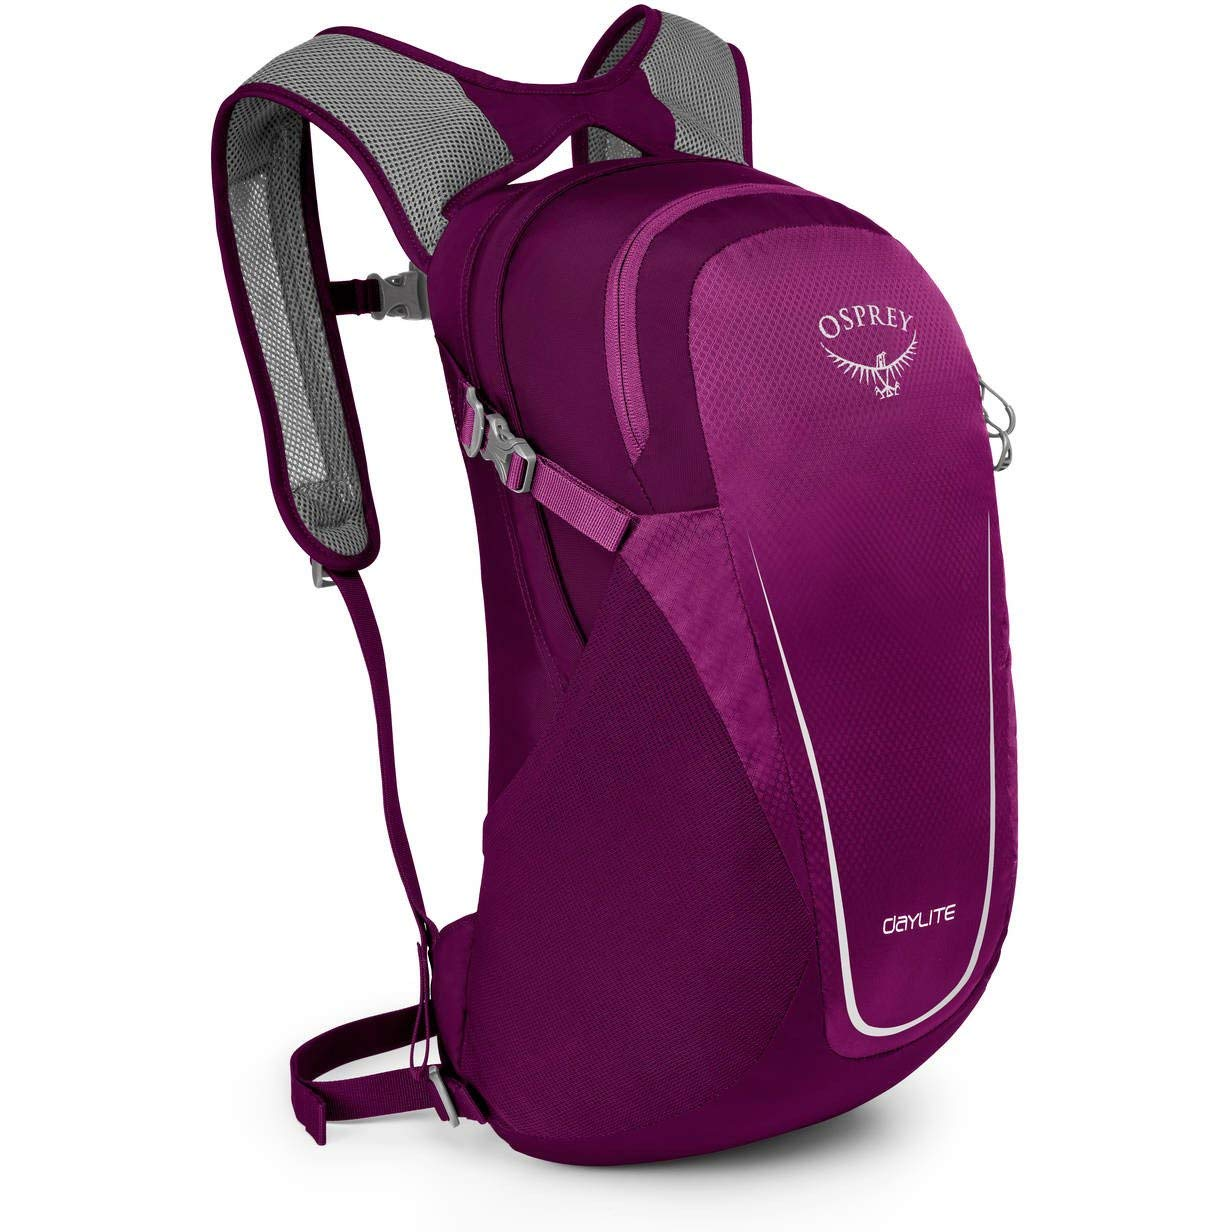 Osprey Packs Daylite Daypack, Eggplant Purple